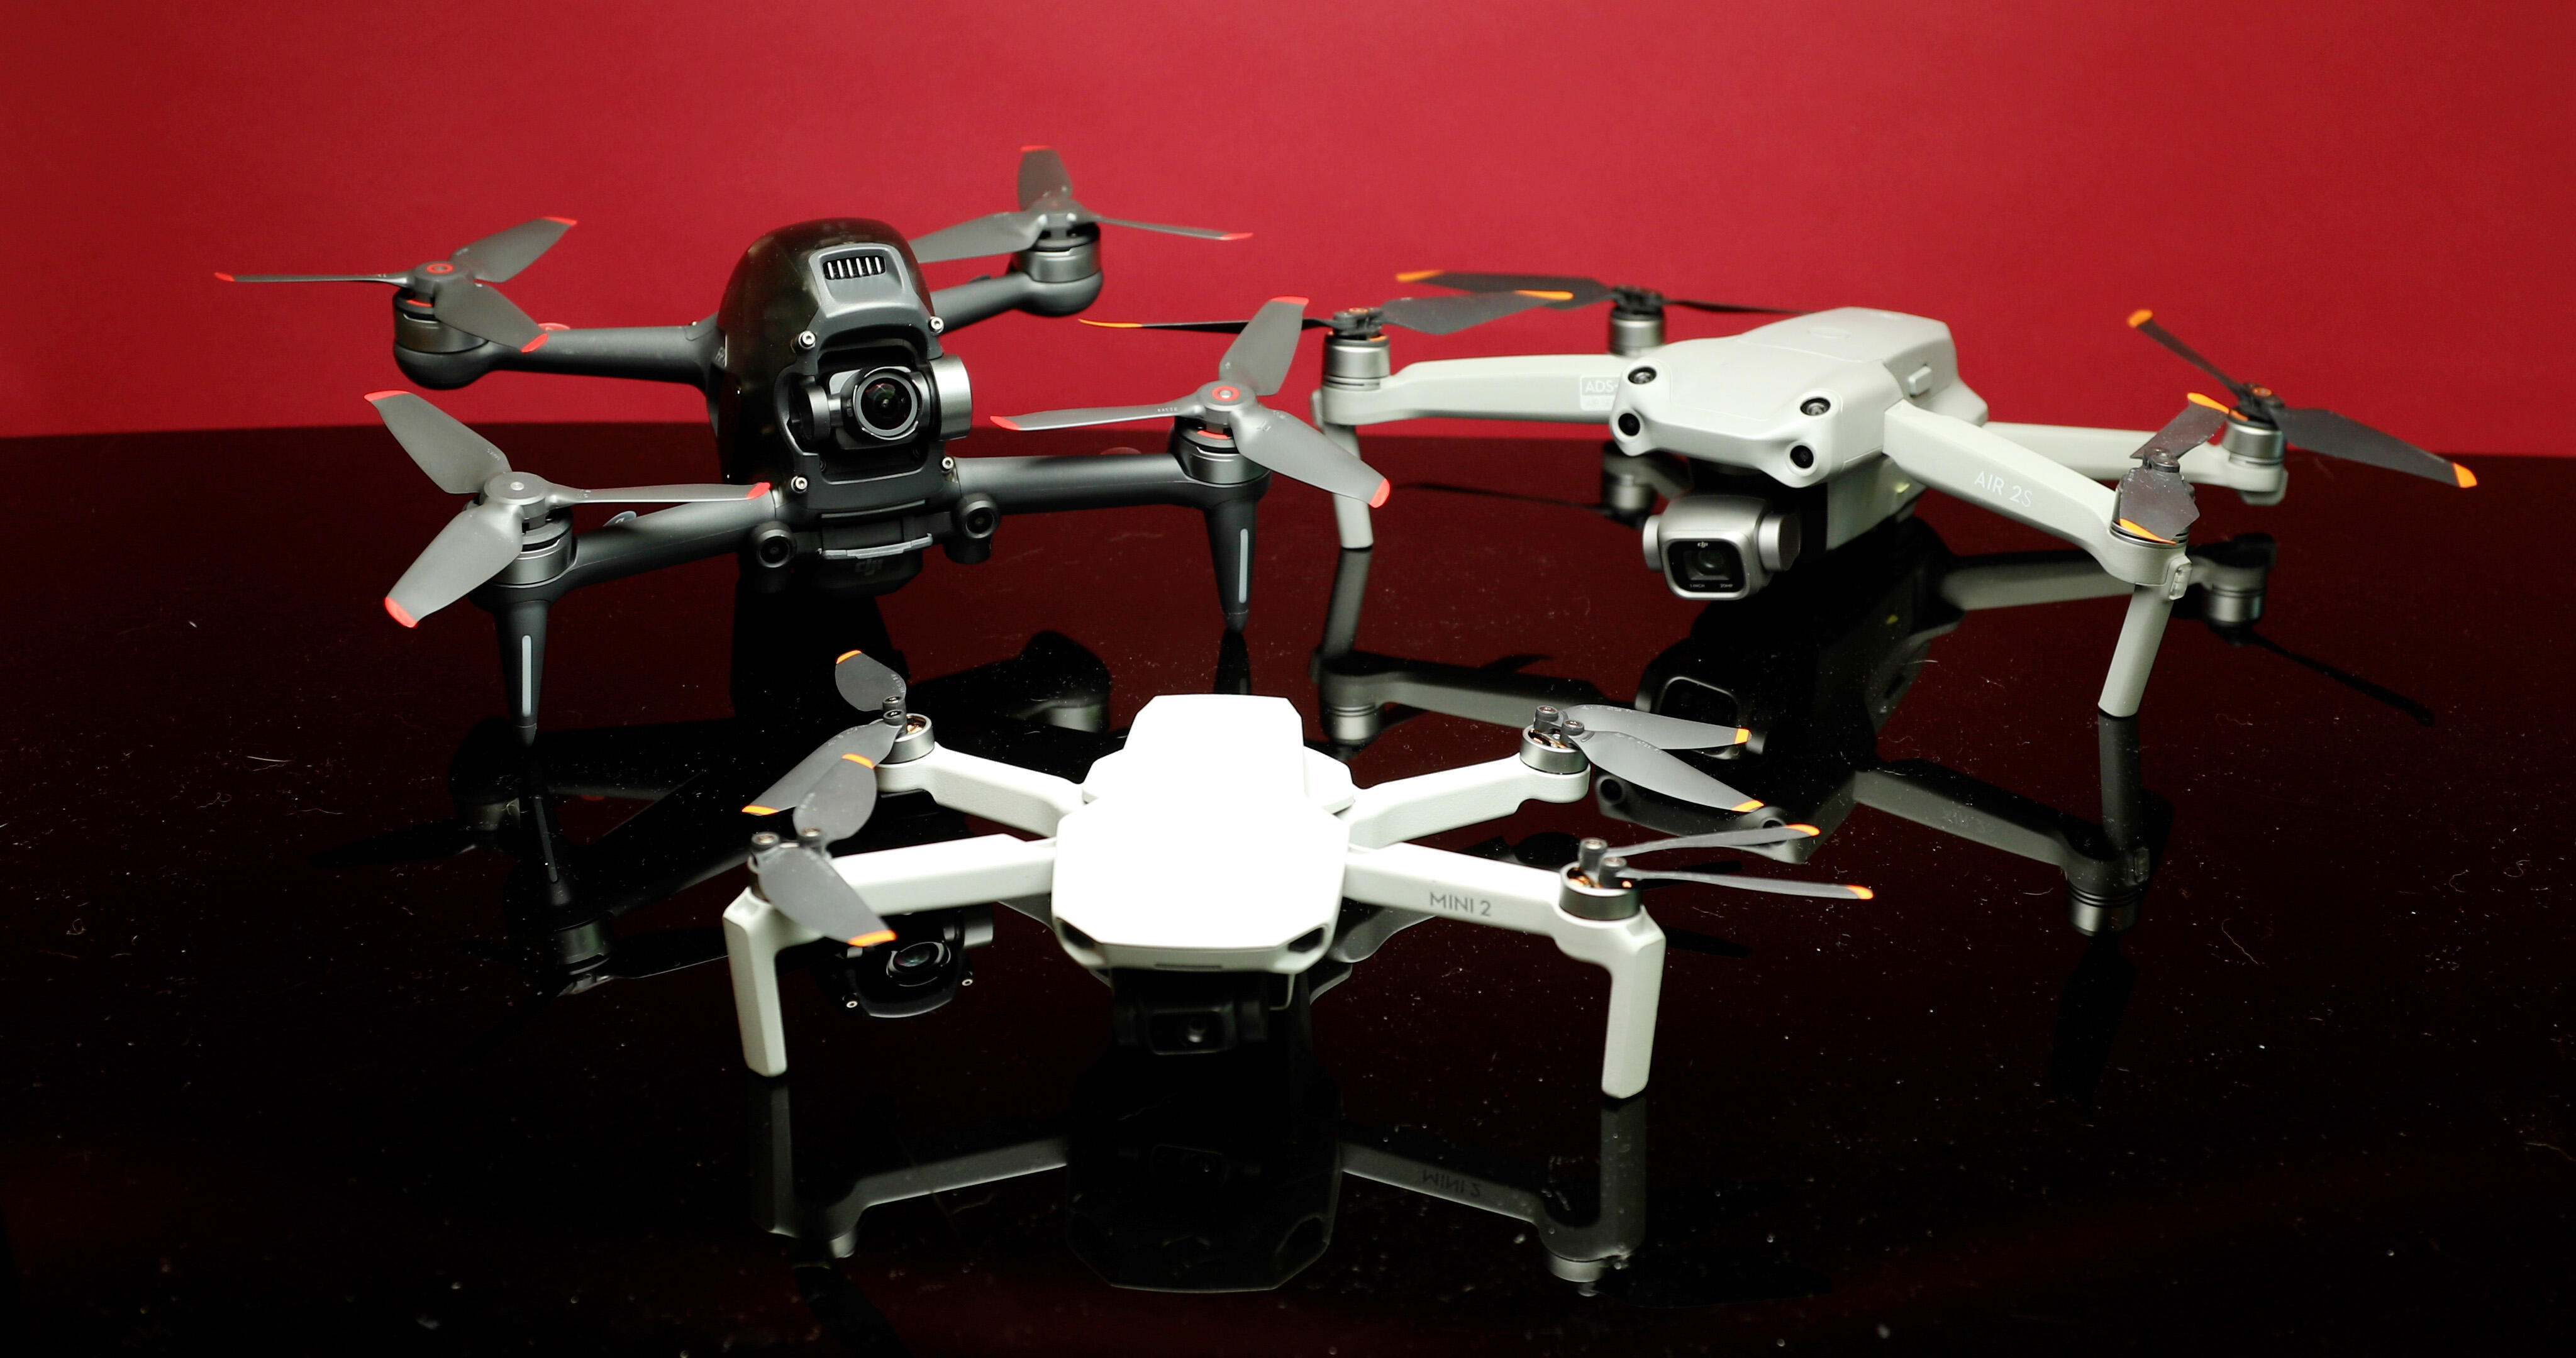 The best DJI drone, whatever your budget